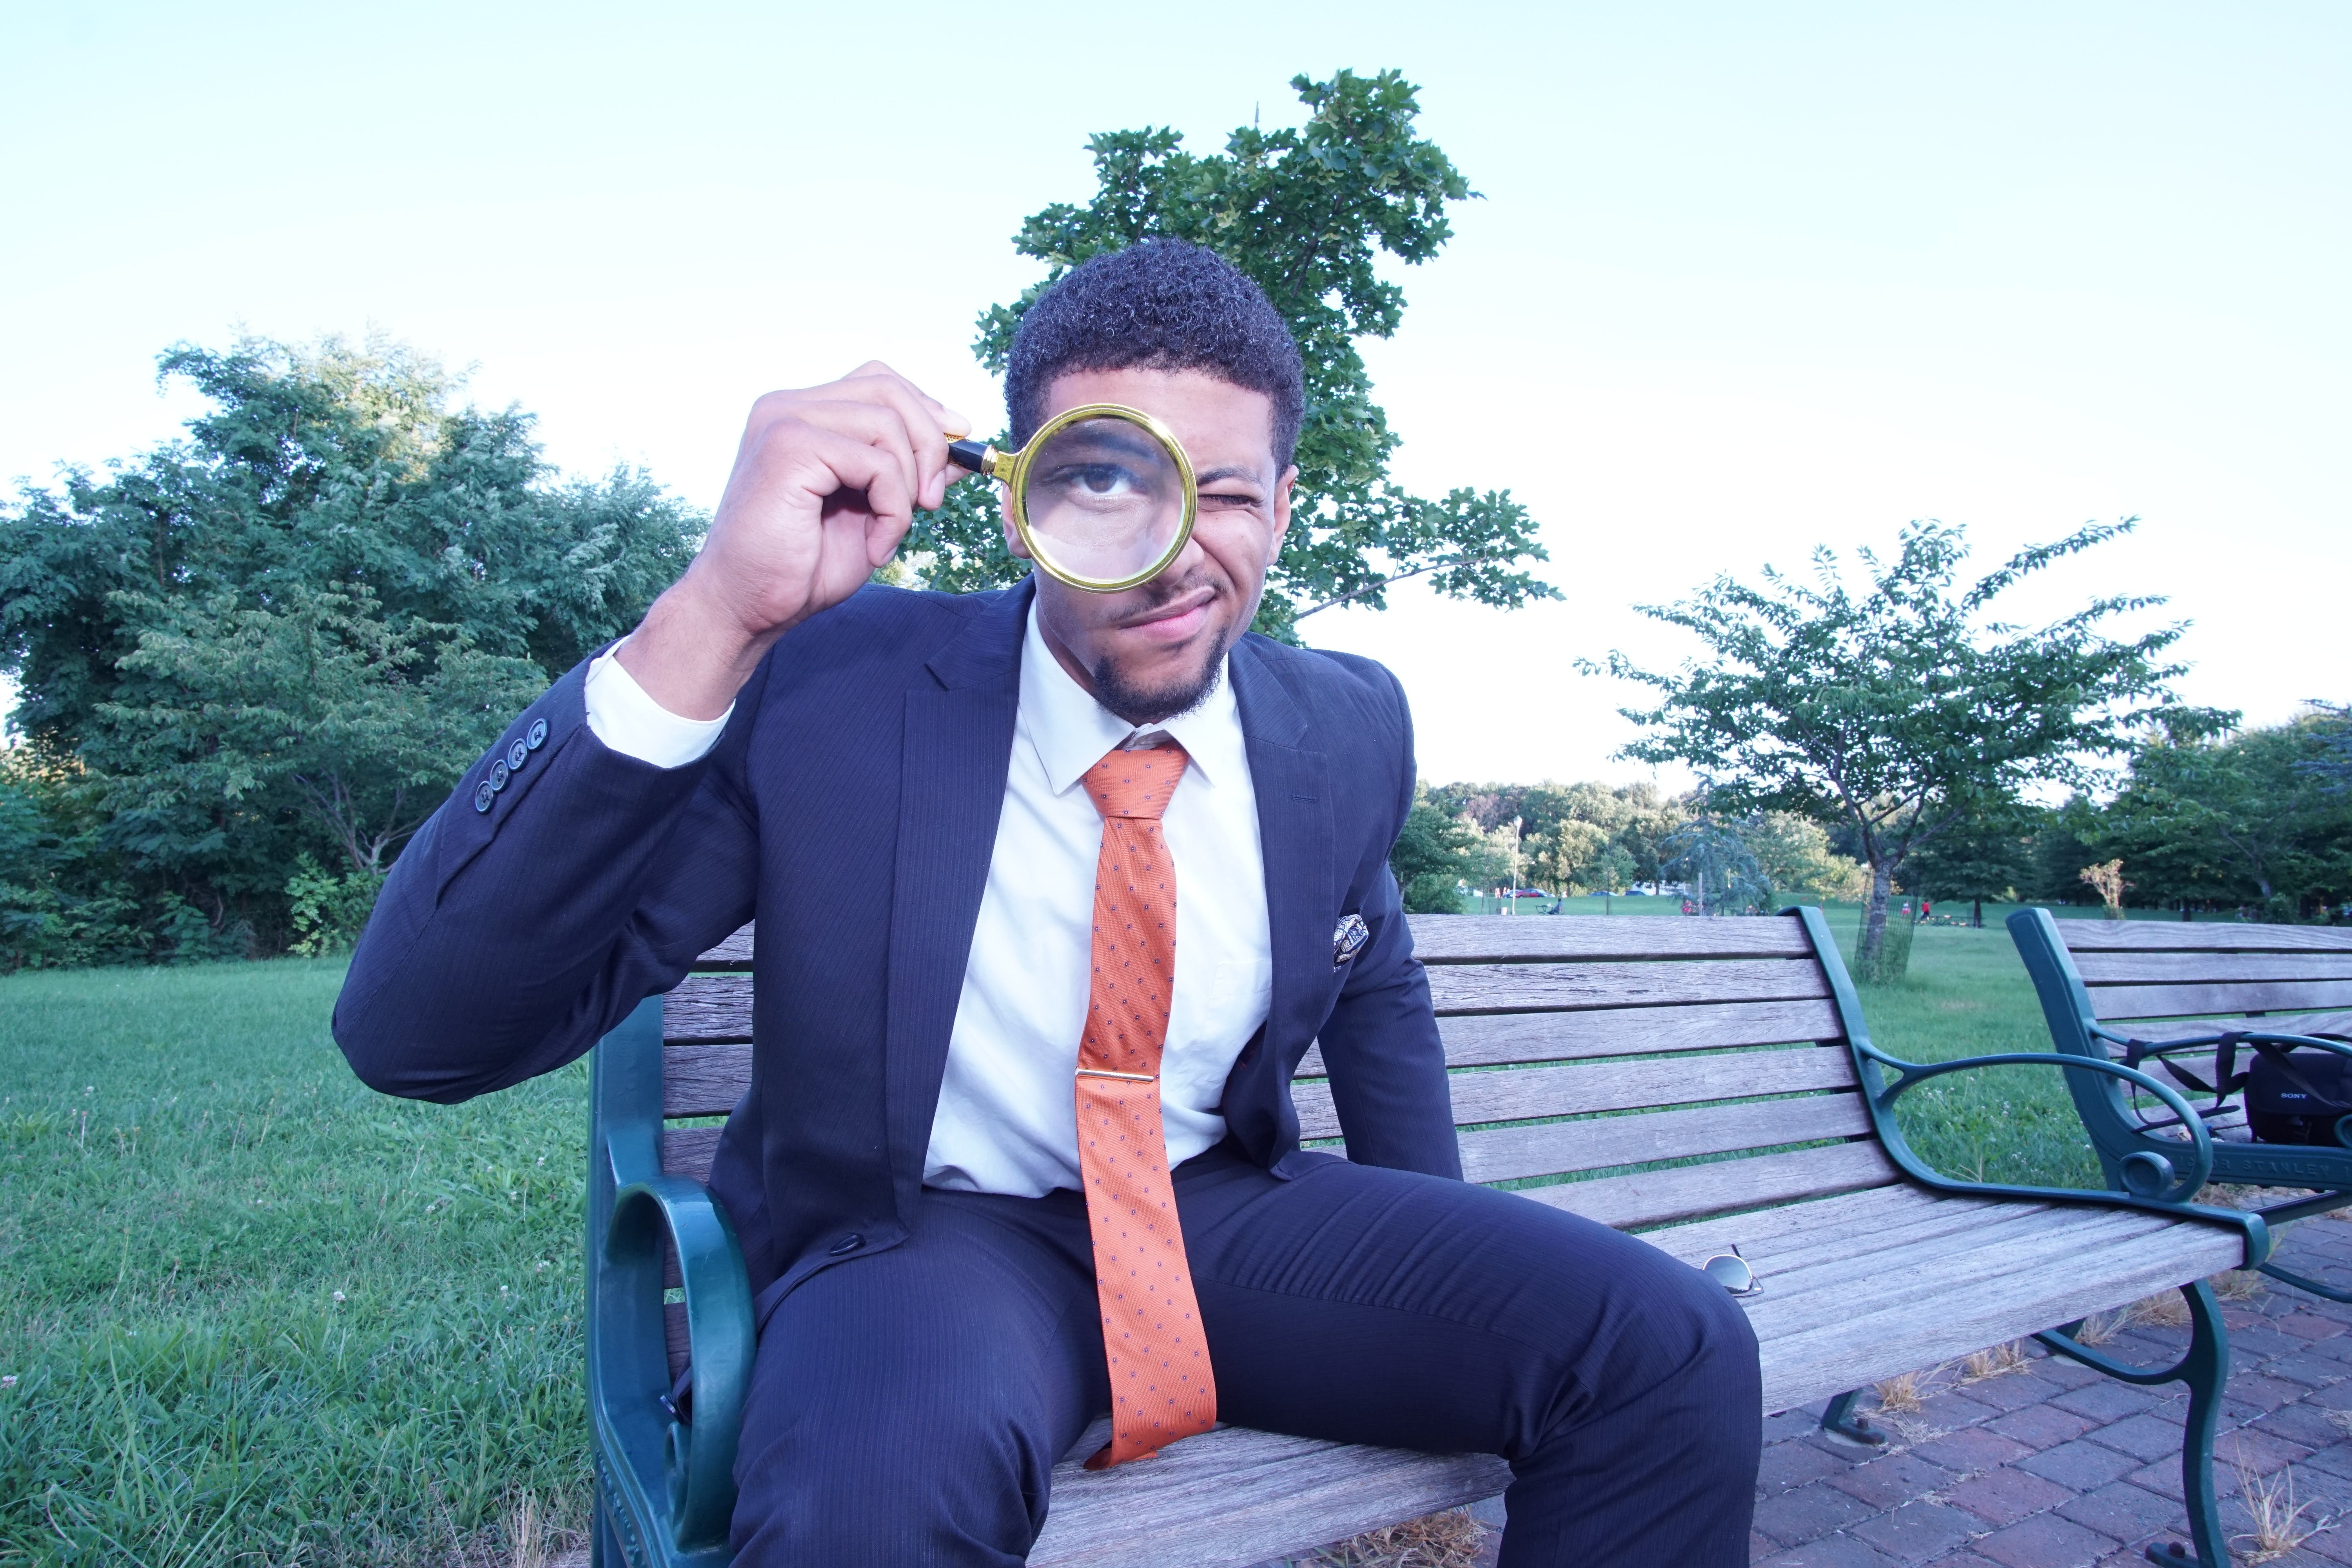 Free stock photo of suit, science, city park, magnifying glass